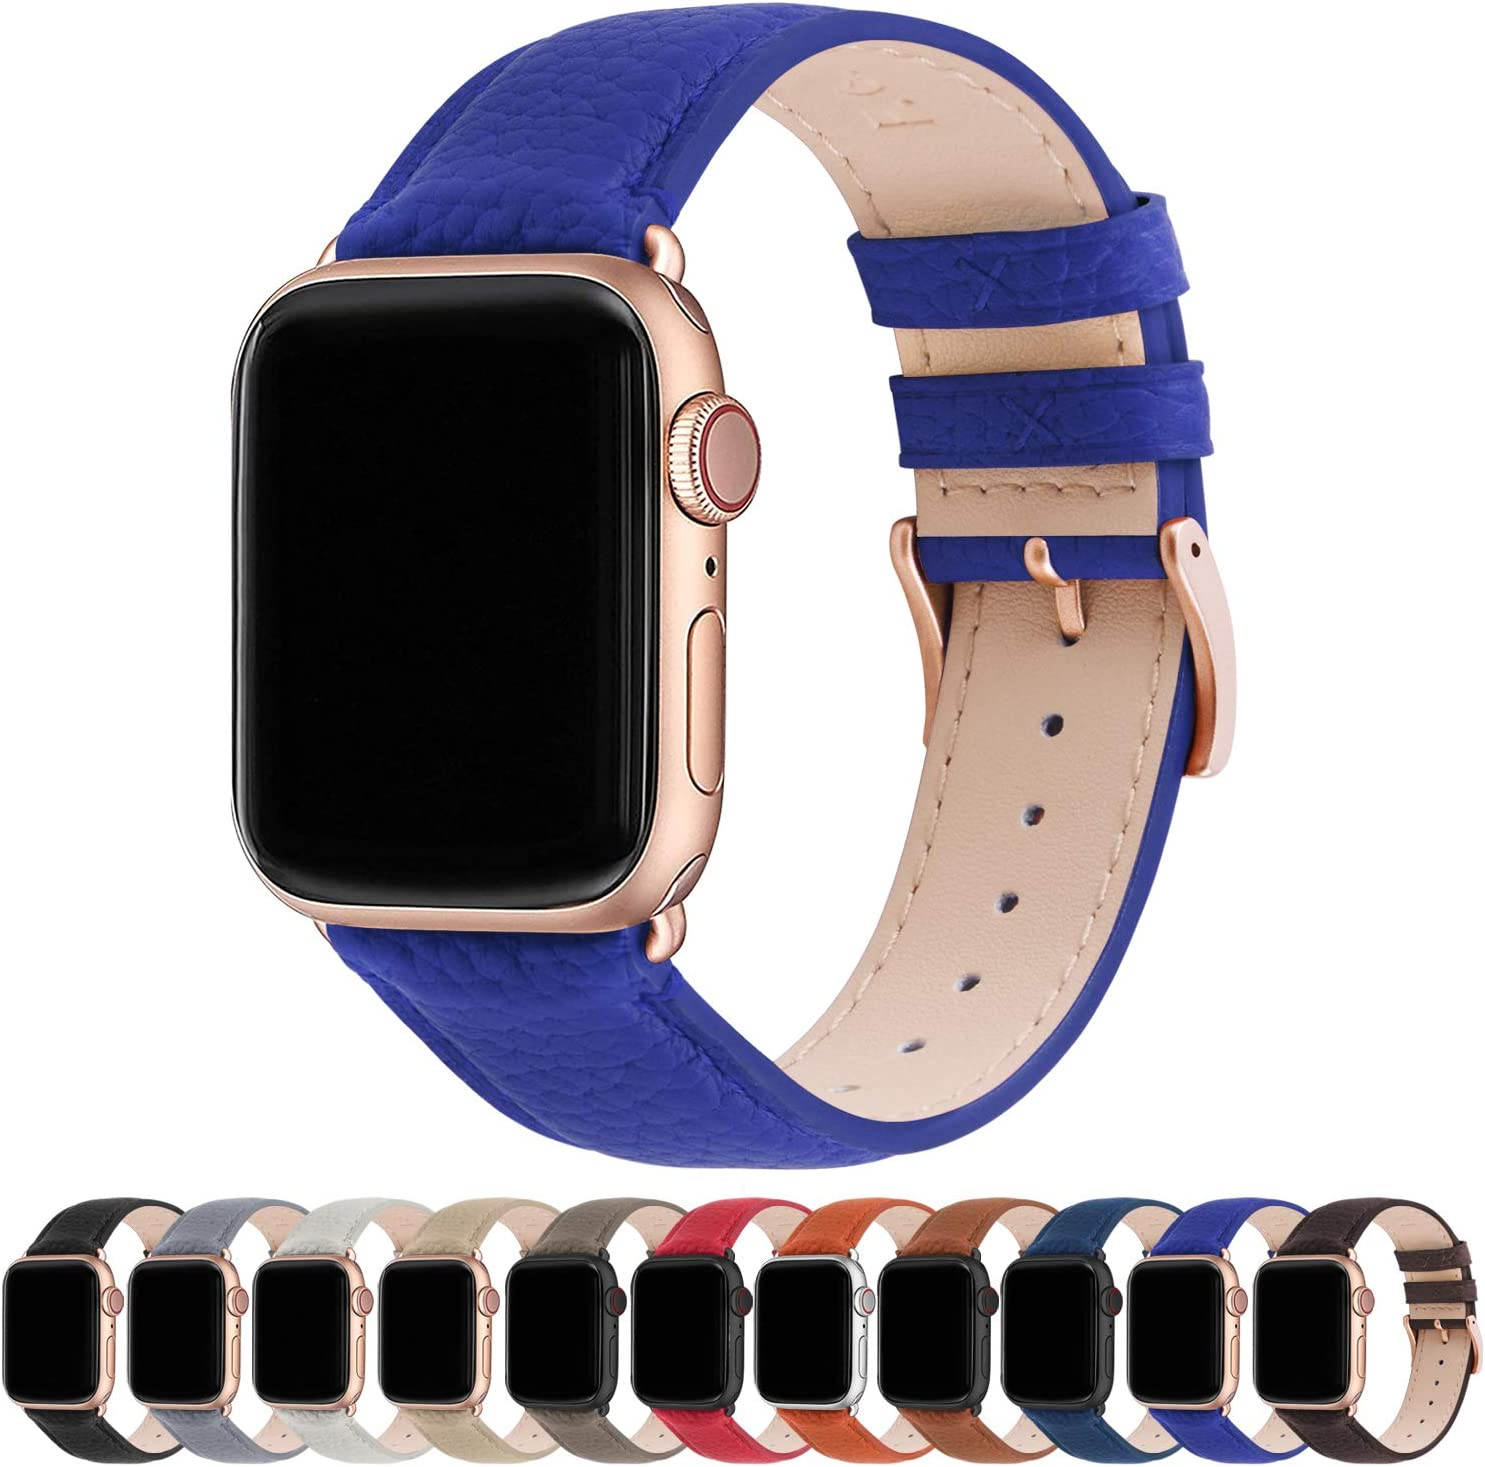 Fullmosa Compatible Apple Watch Band 44mm 42mm 40mm 38mm Leather Compatible iWatch Band/Strap Compatible Apple Watch SE & Series 6 5 4 3 2 1, 38mm 40mm, Electric Blue + Rose Gold Buckle